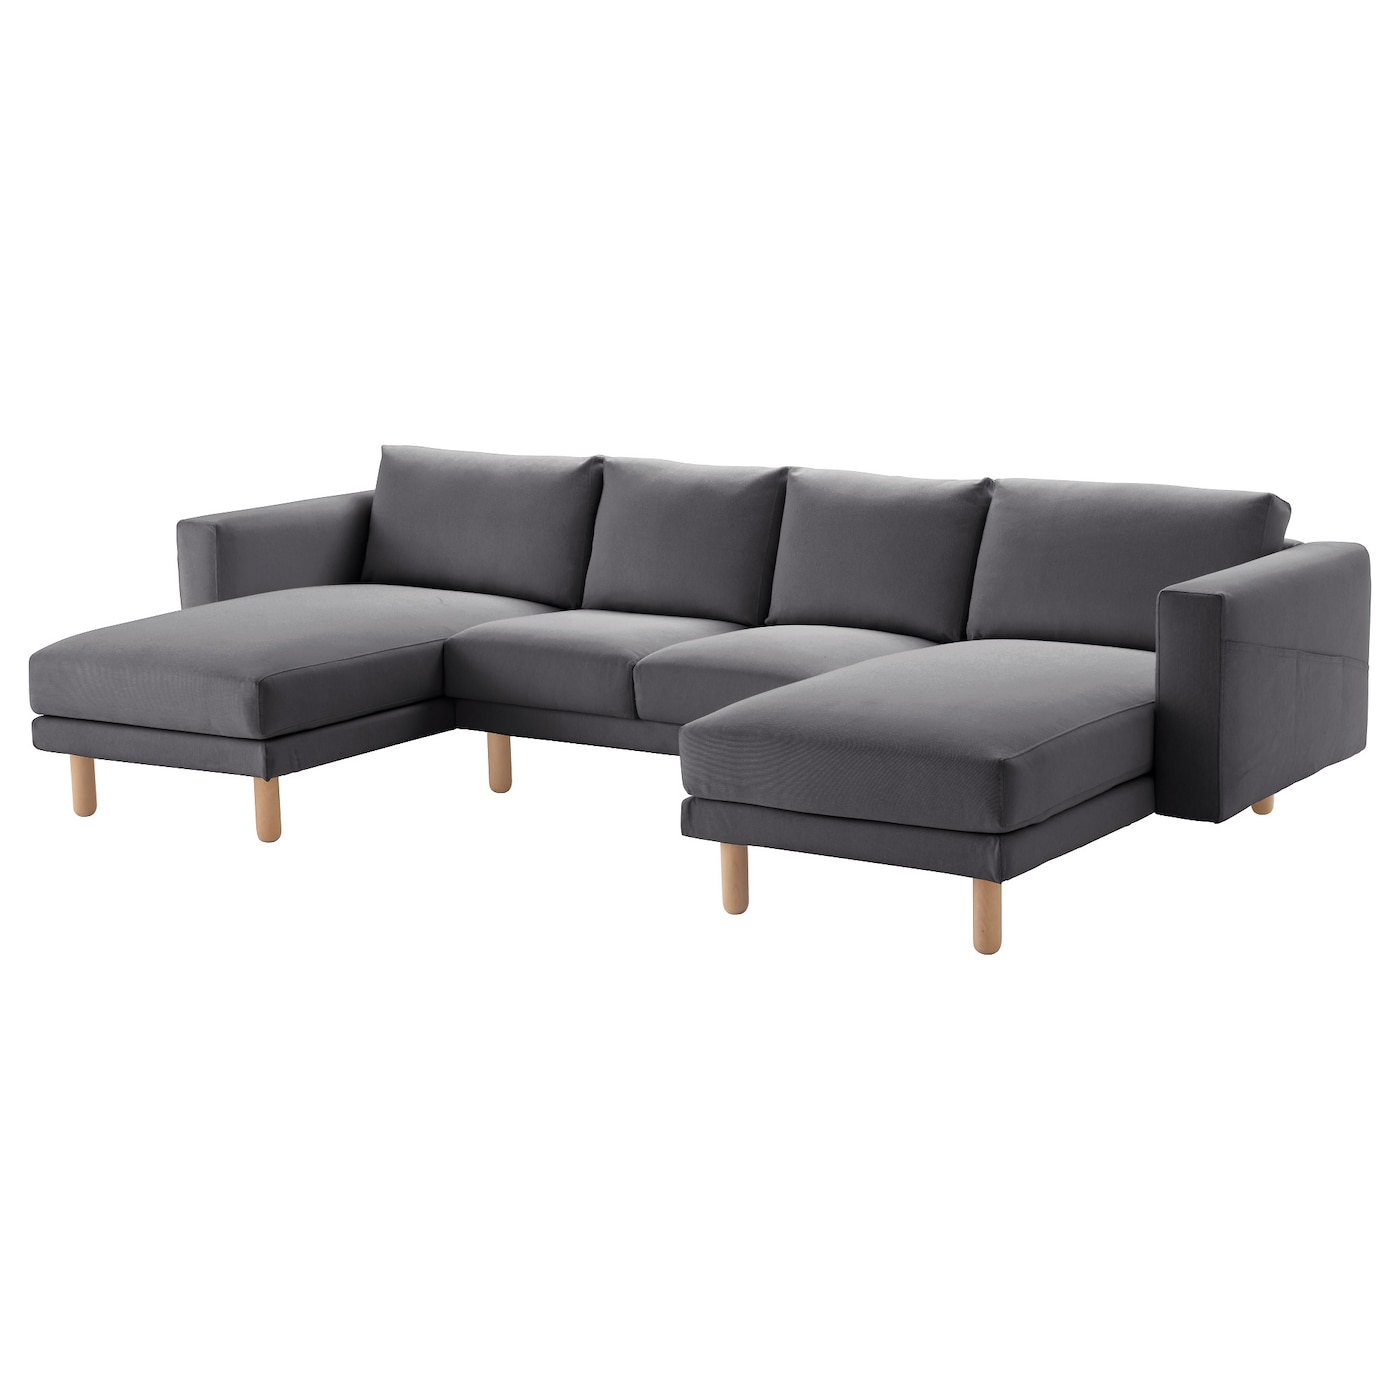 Norsborg 2 seat sofa with 2 chaise longues finnsta dark for 2 seater chaise sofa